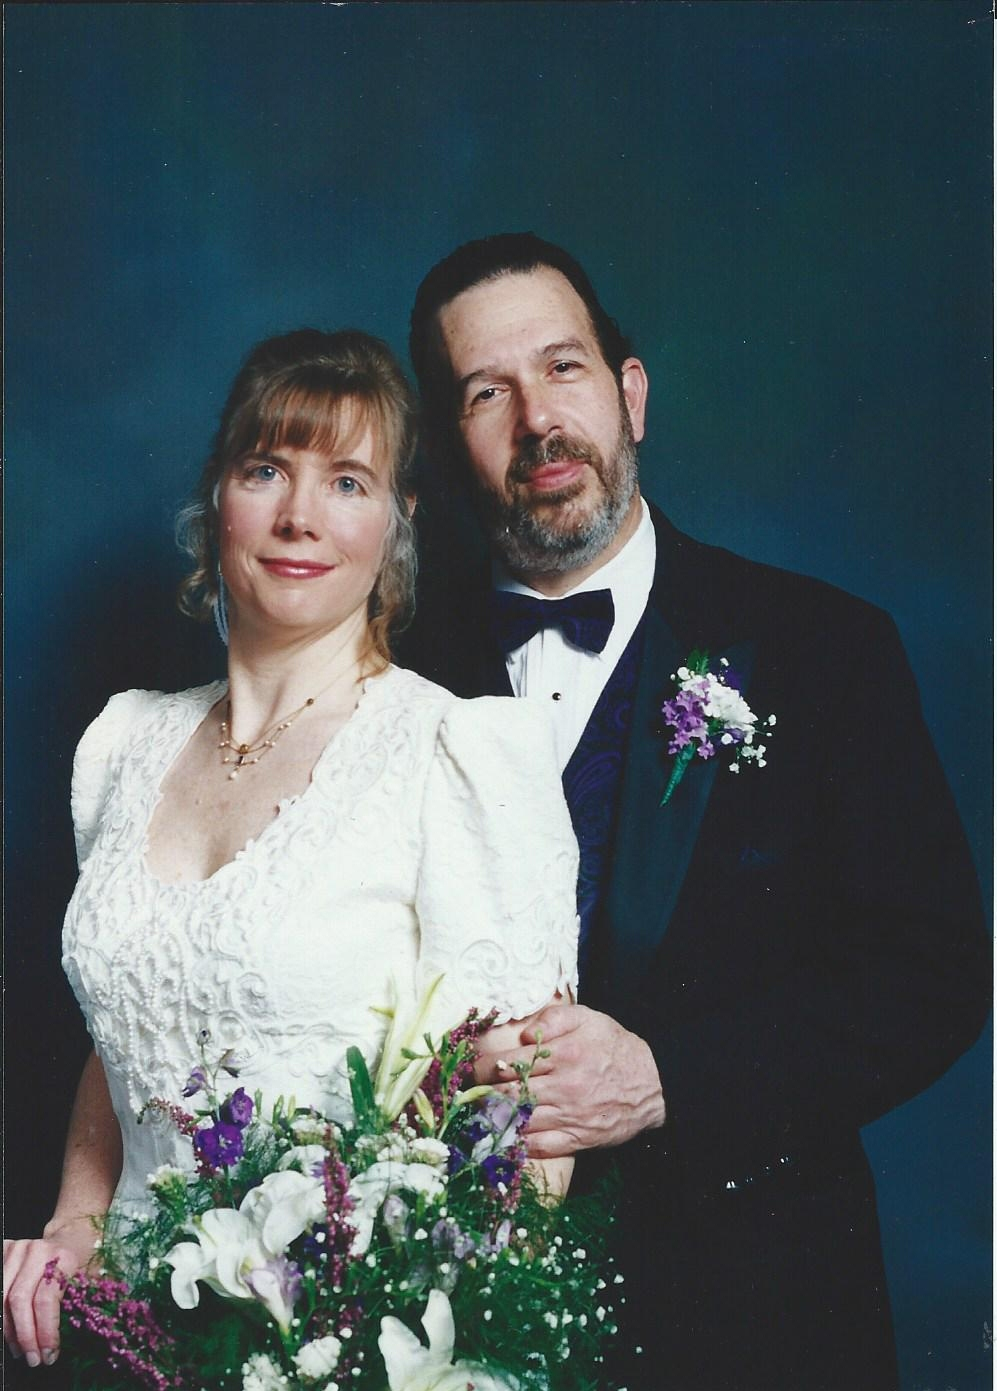 Katy & Dale wedding picture - 11-19-95